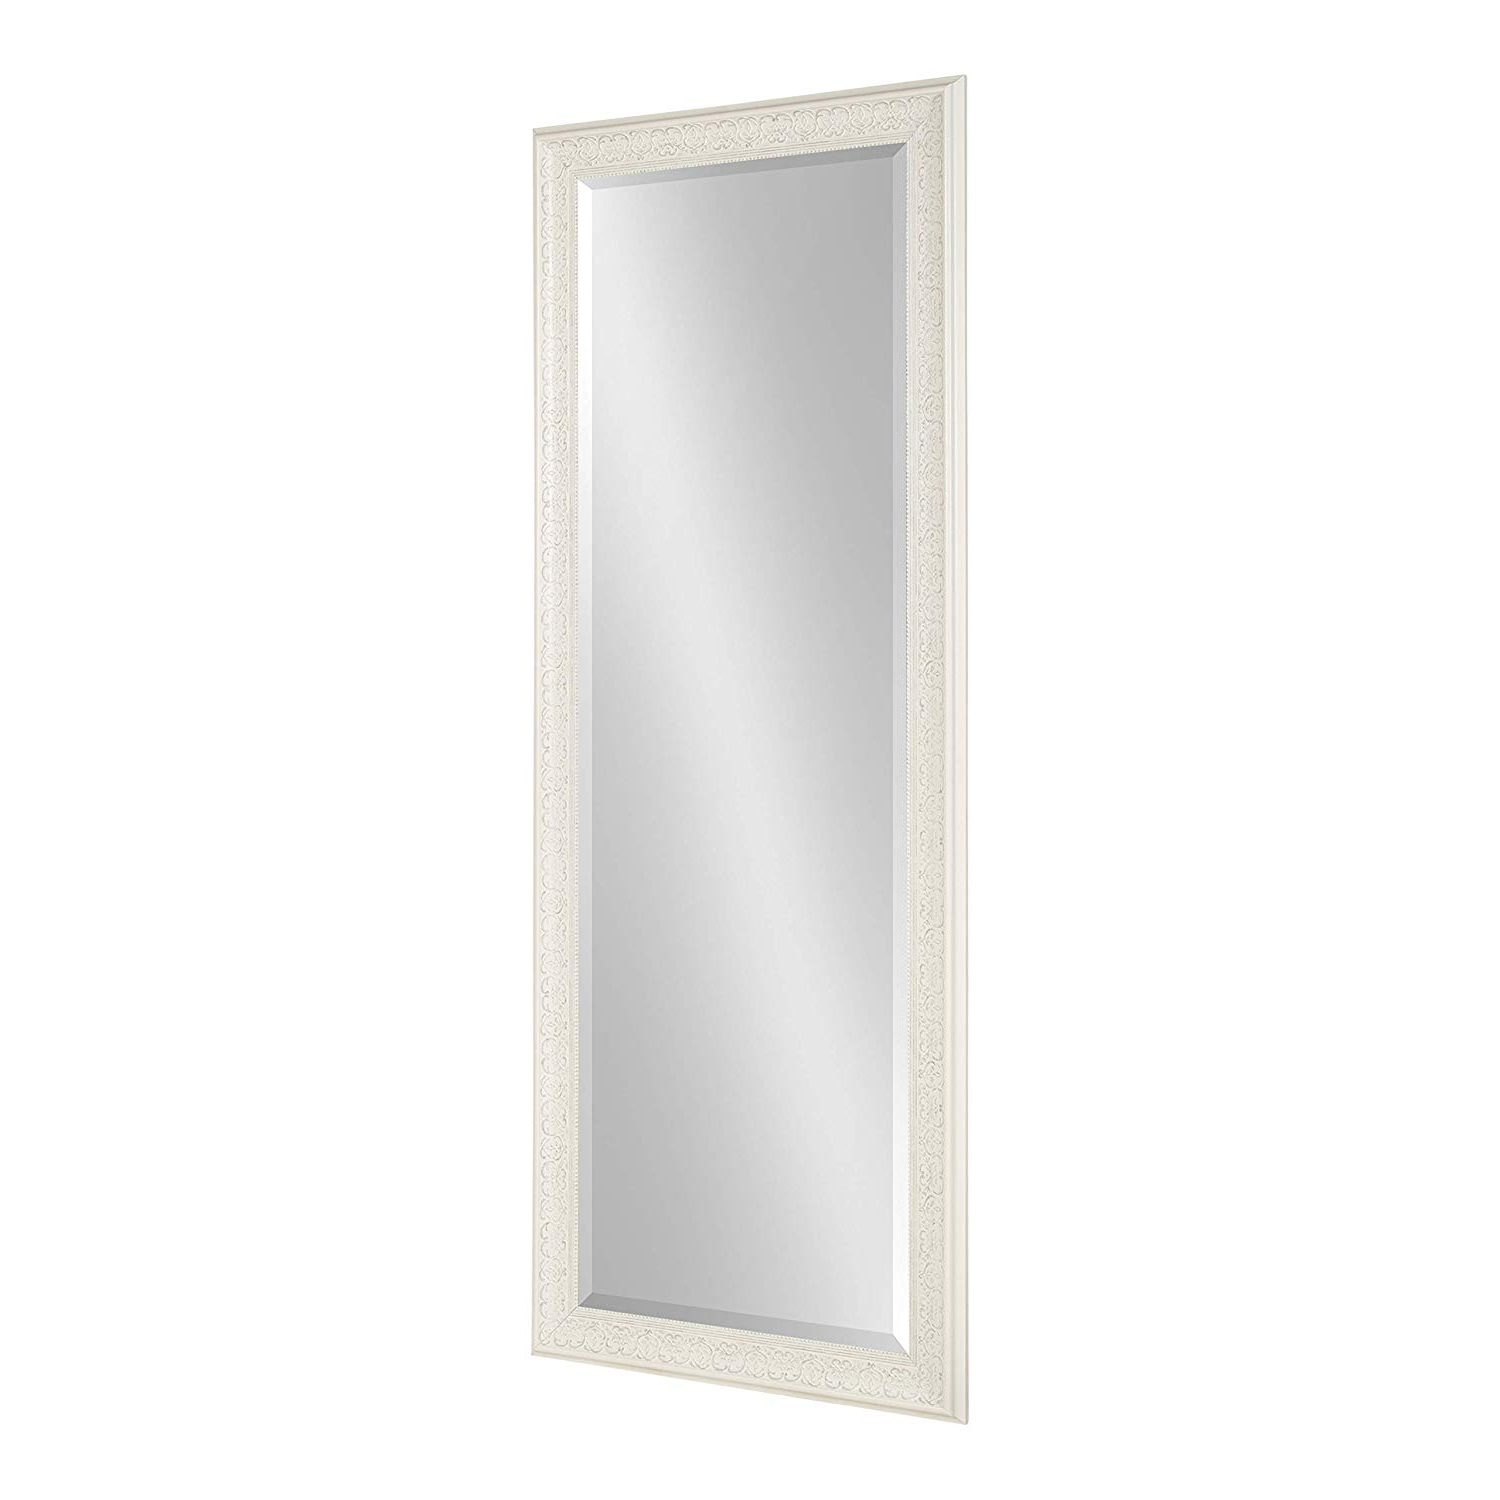 Kate And Laurel Alysia Decorative Frame Full Length Wall Mirror, 52.5x (View 8 of 20)